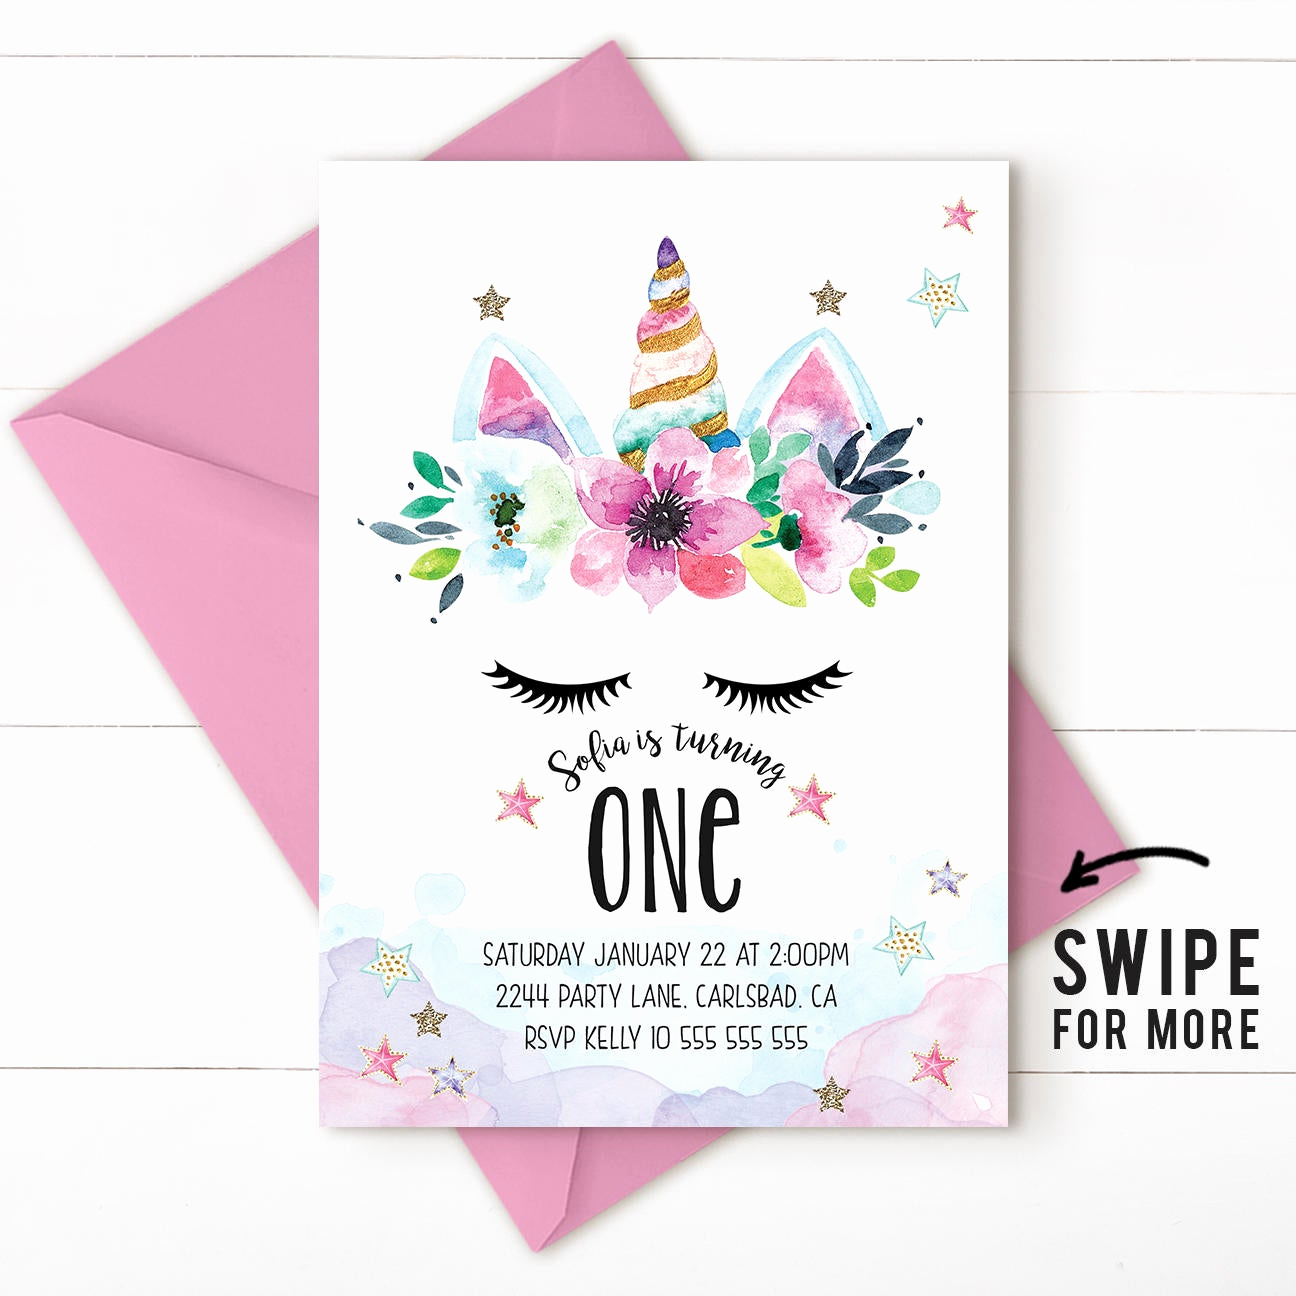 Unicorn Birthday Invitation Templates Awesome Unicorn Birthday Invitation Unicorn Invitation Magical